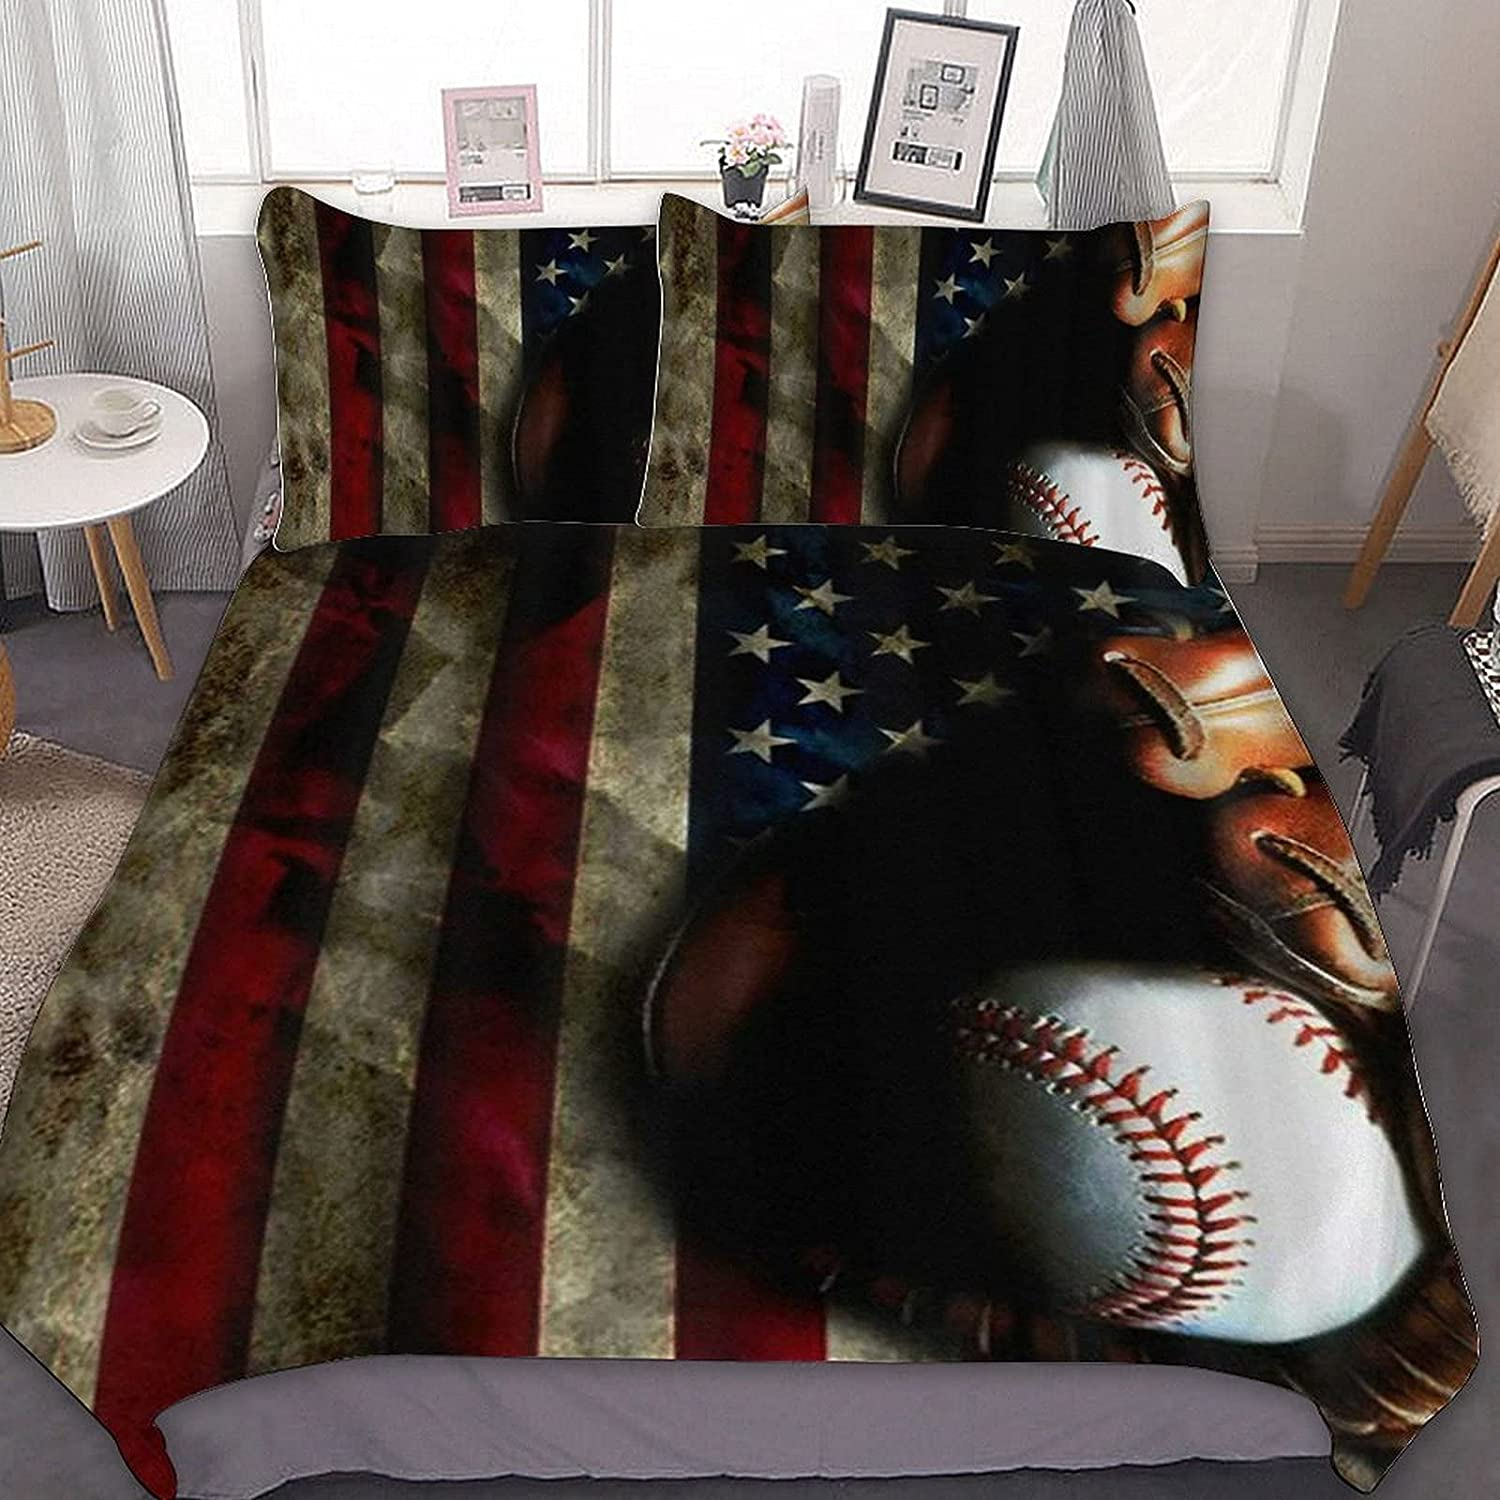 PNNUO Vintage US Flag Baseball Queen Manufacturer regenerated product Size Max 46% OFF Set King Twin Bed Full